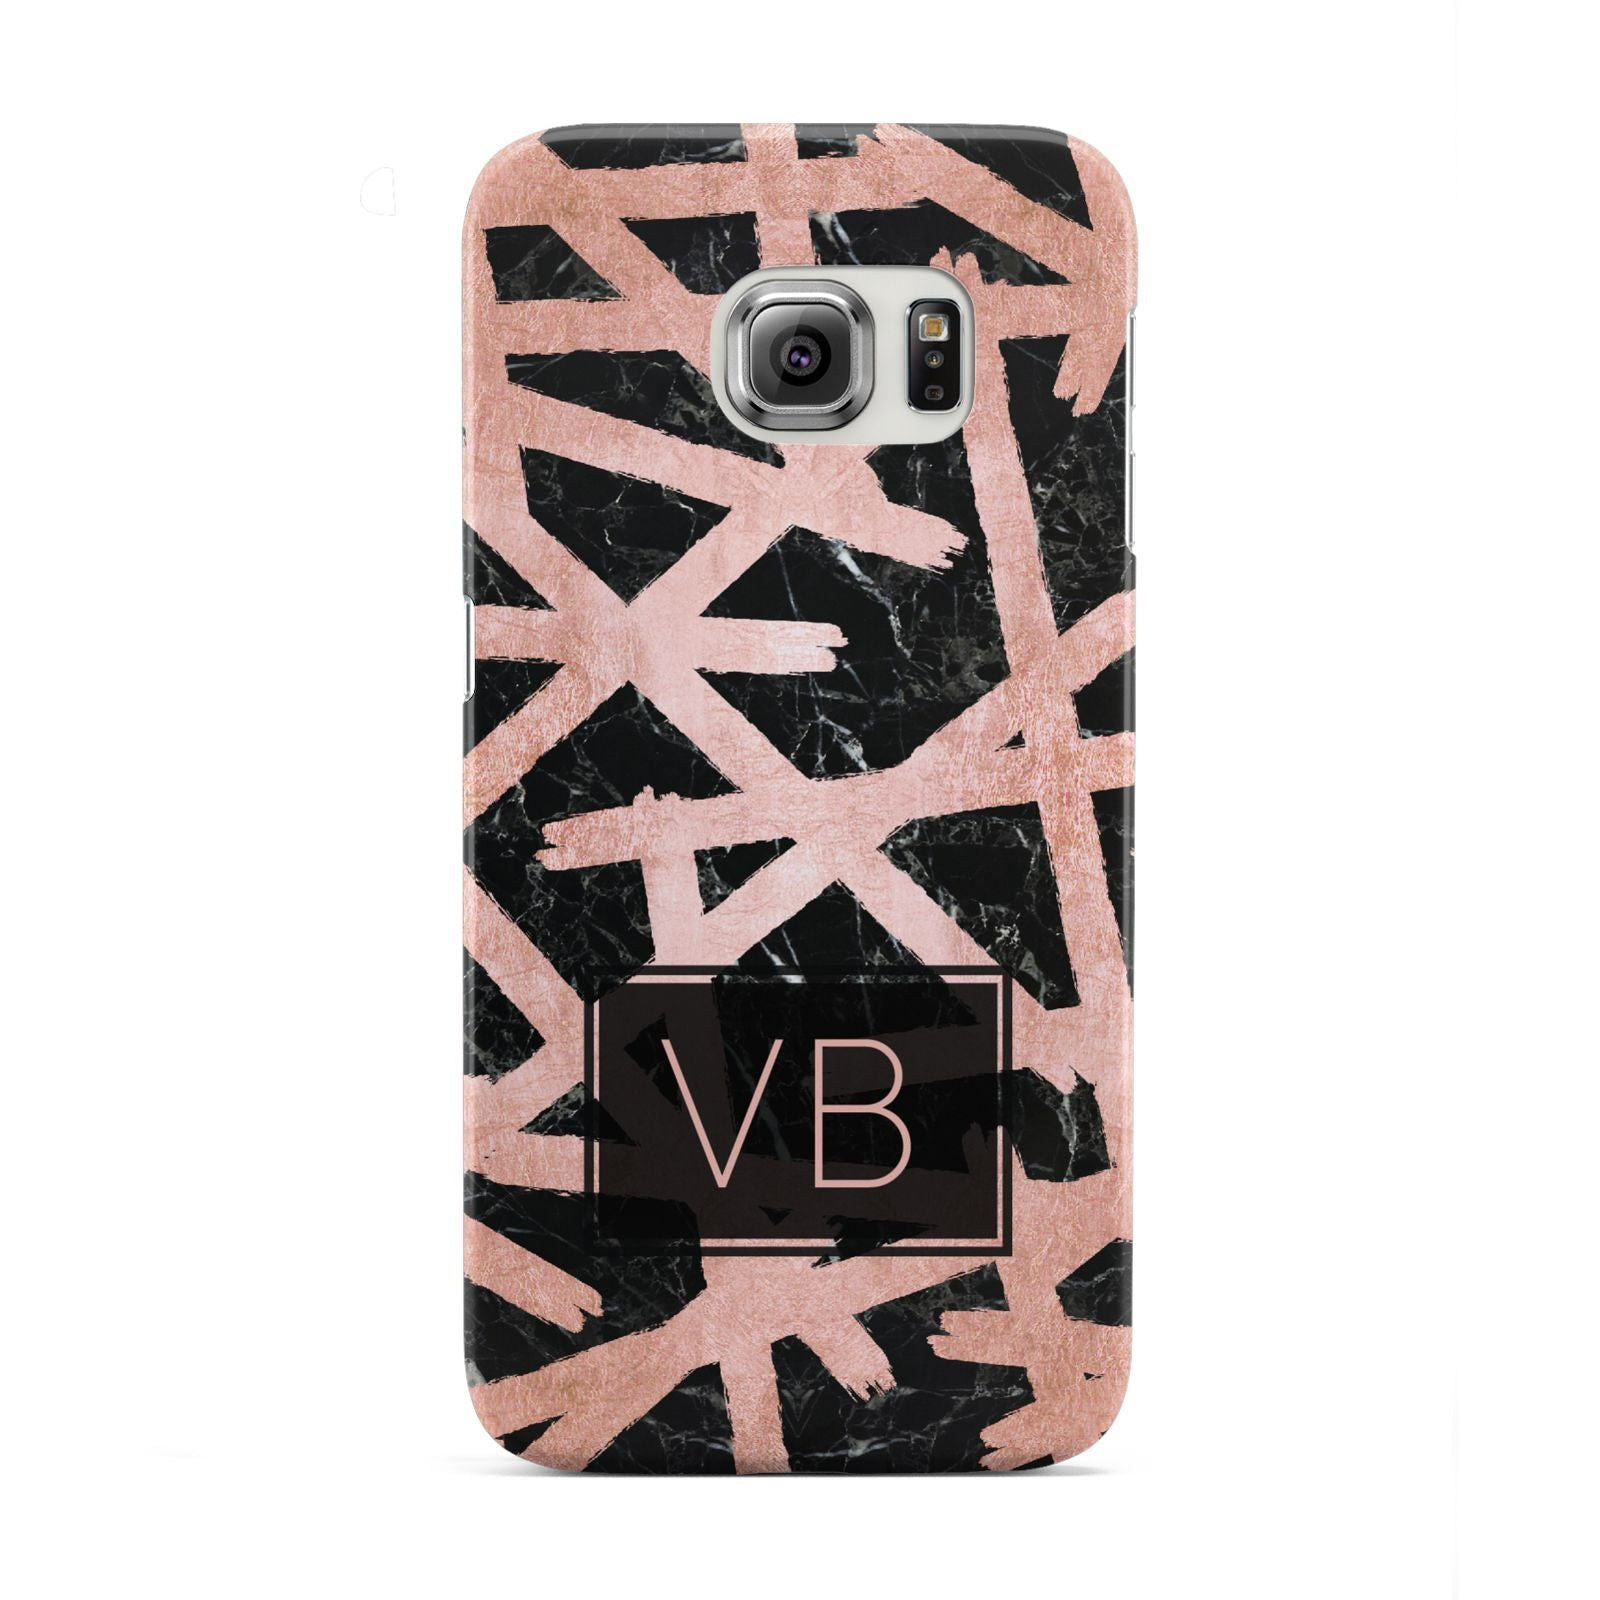 Personalised Rose Gold Effect Samsung Galaxy S6 Edge Case